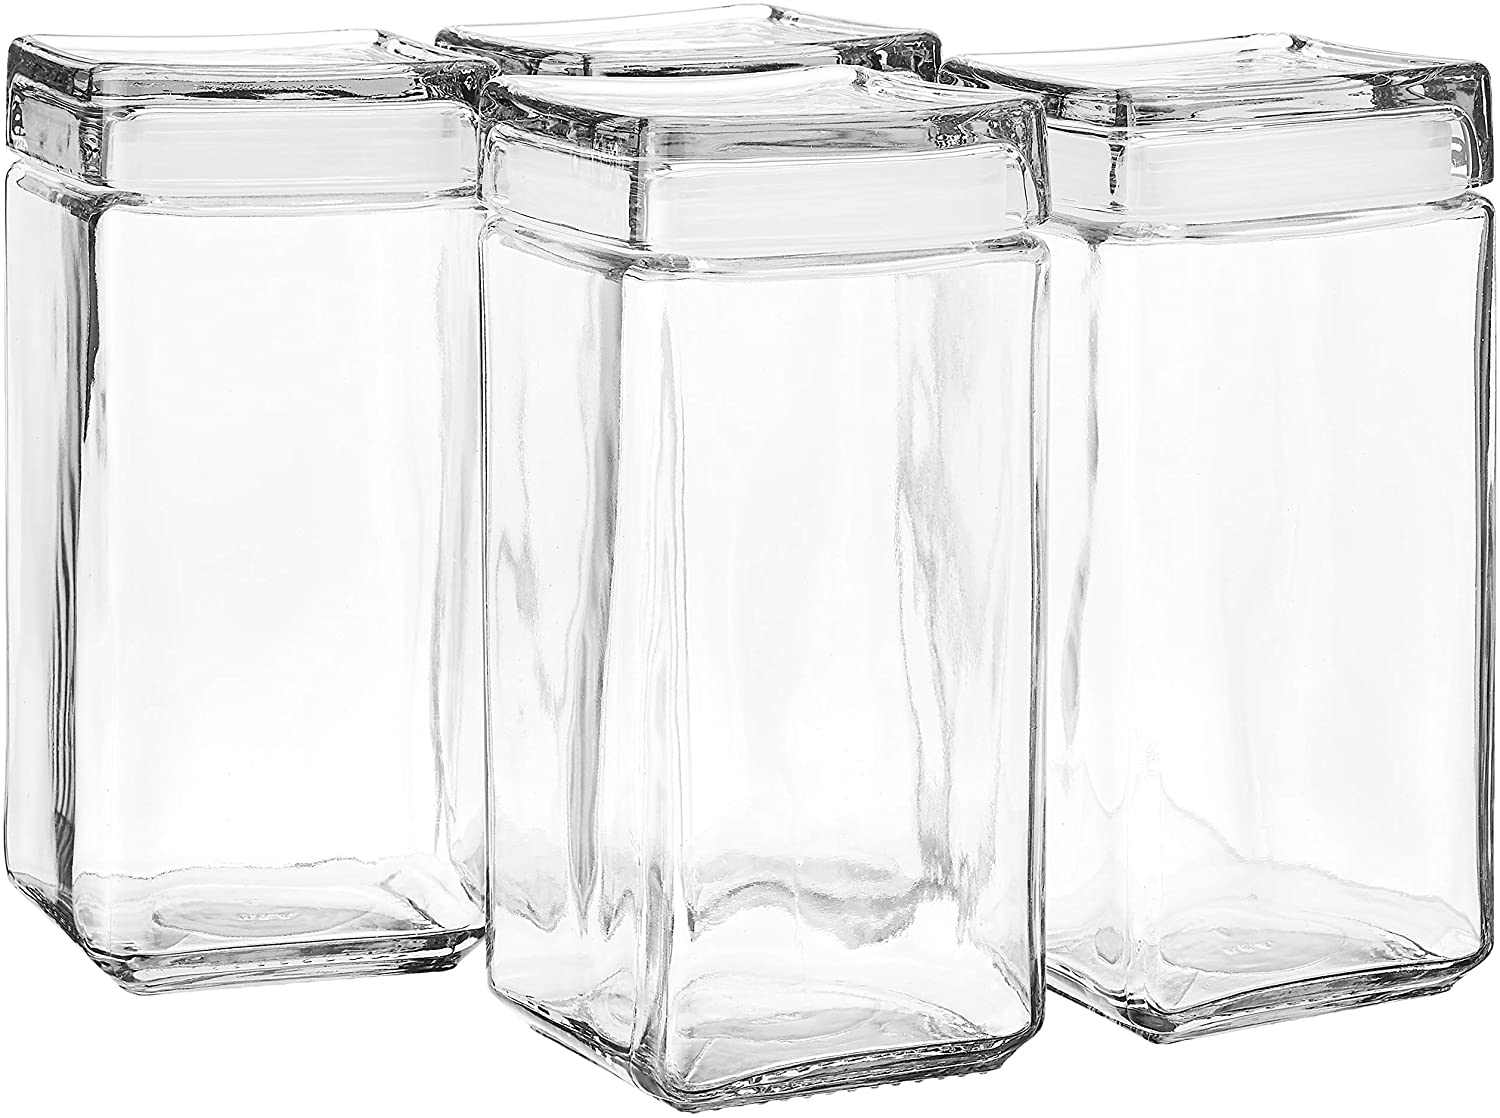 Anchor Hocking 2-Quart Stackable Jars with Glass Lids, Set of 4, Clear - 85589R